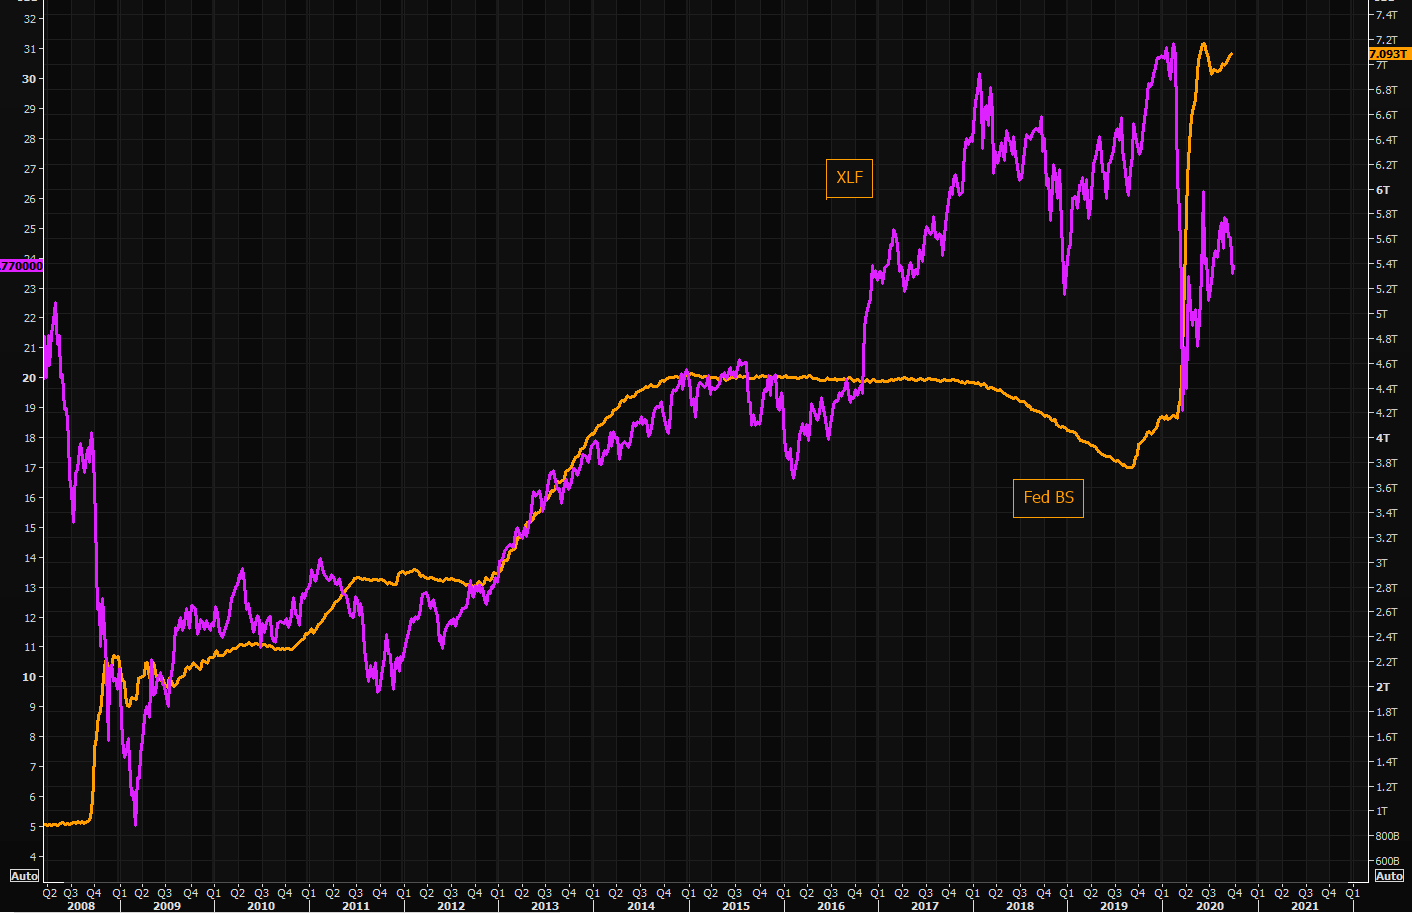 Fed BS vs XLF - slightly different long term view compared to the European edition